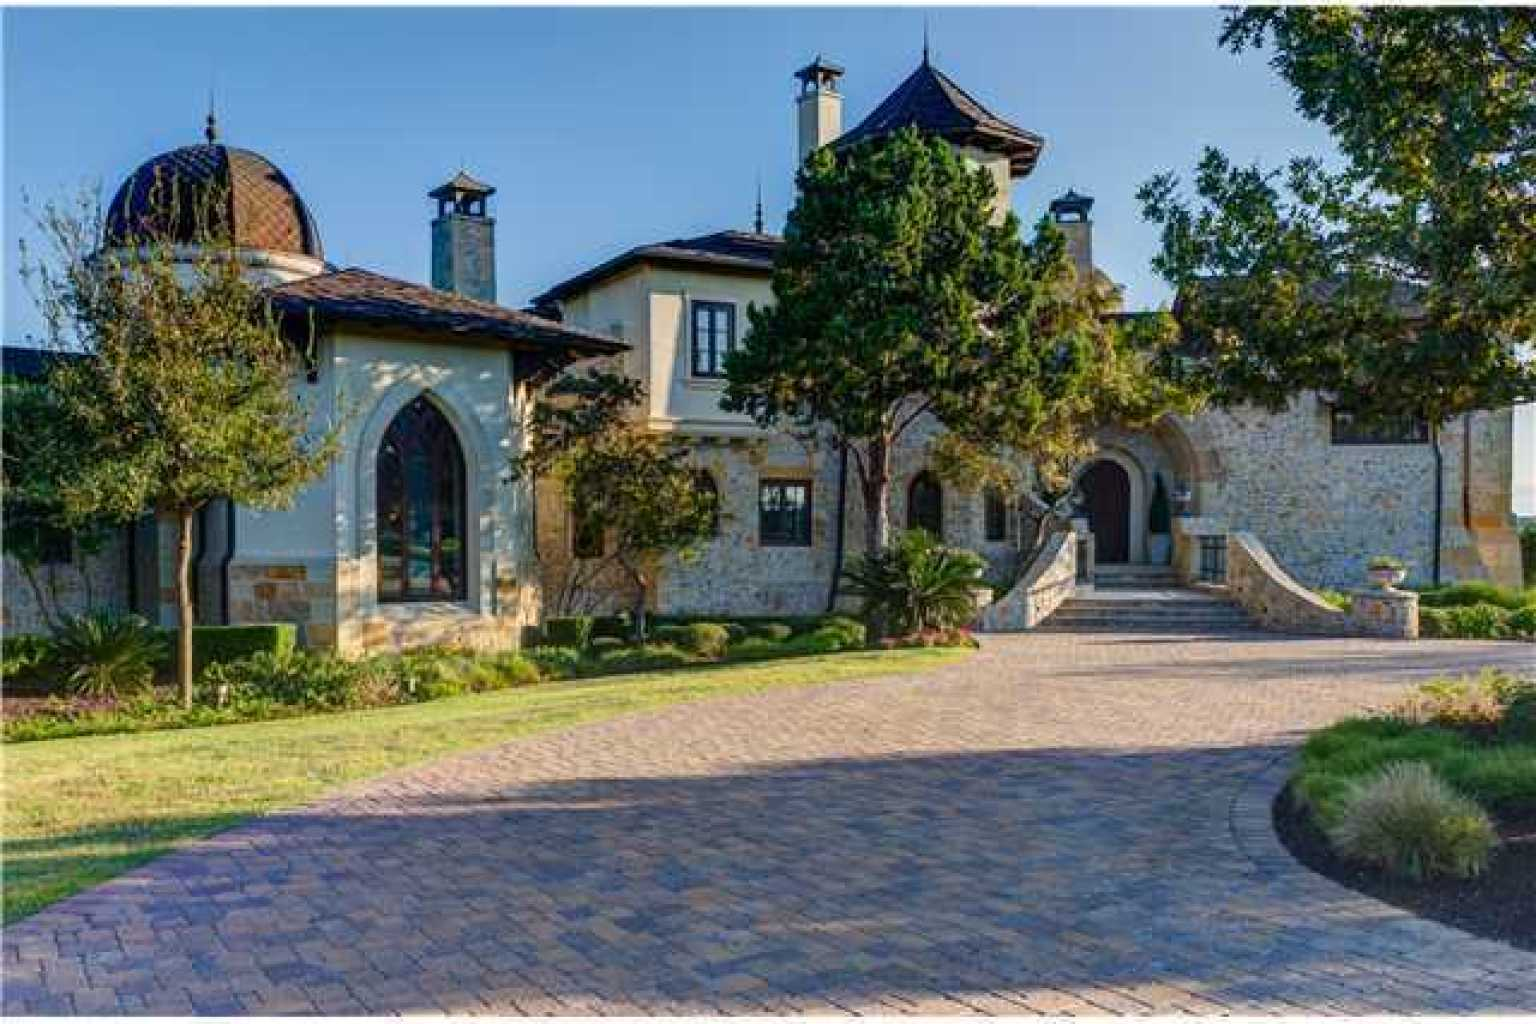 Best Kitchen Gallery: Bret Curtis Race Car Driver Who Bought Lance Armstrong's Home Is of Largest Home In Texas on rachelxblog.com